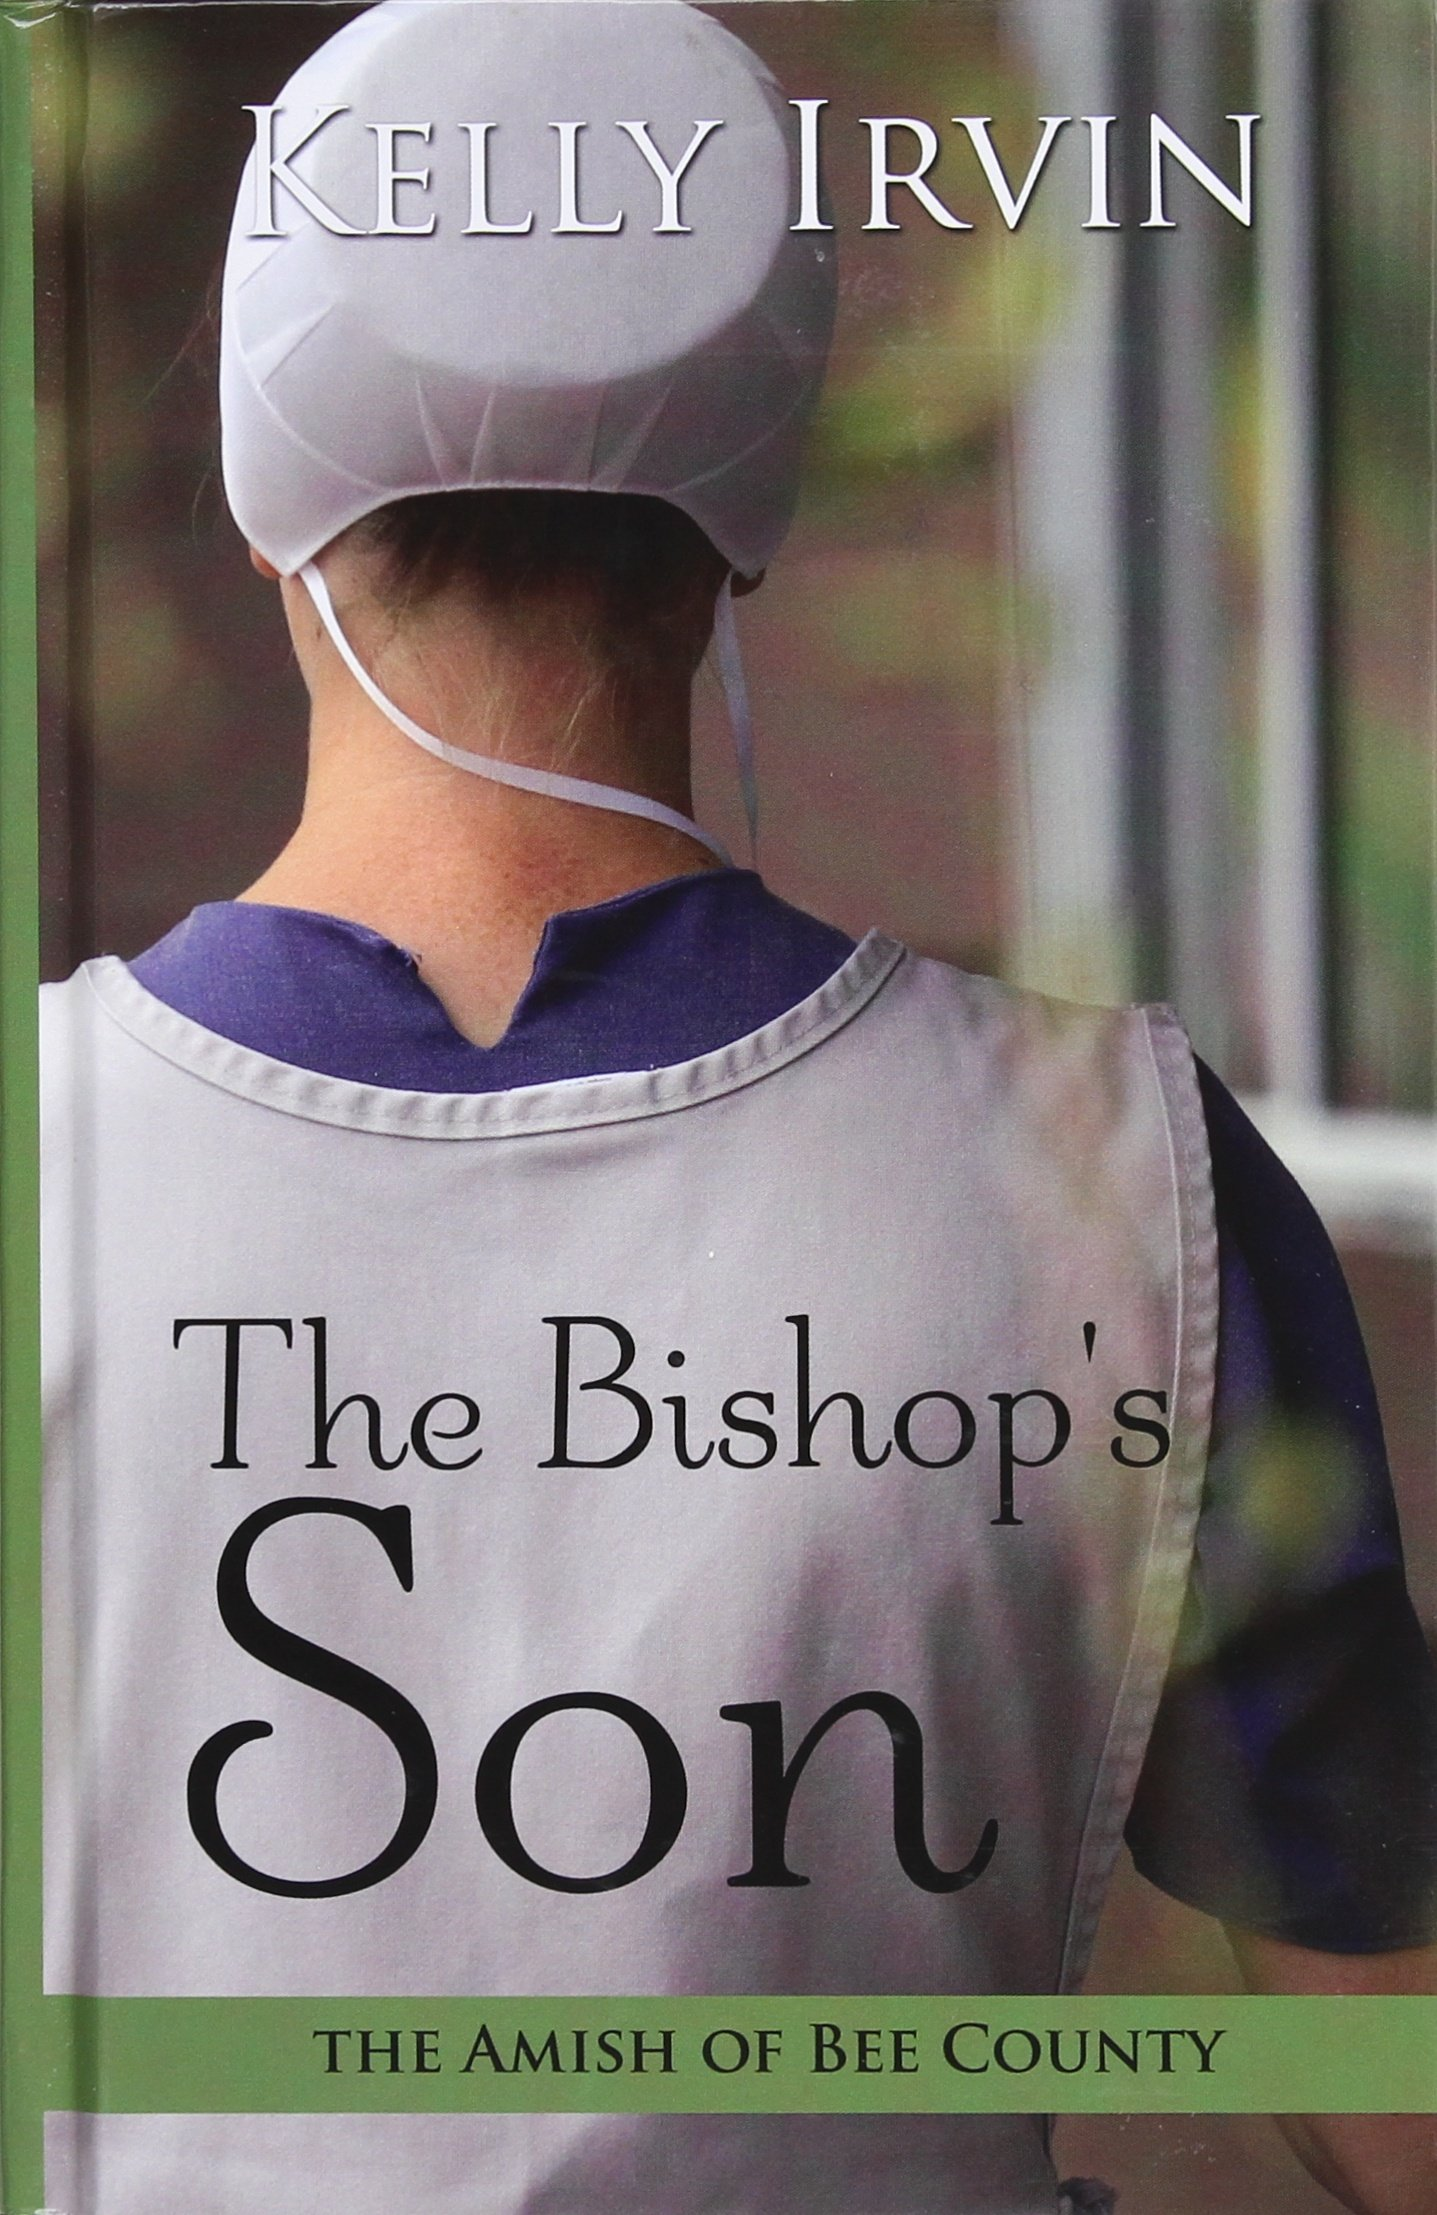 Buy The Bishop's Son (Amish of Bee County) Book Online at Low Prices in  India | The Bishop's Son (Amish of Bee County) Reviews & Ratings - Amazon.in